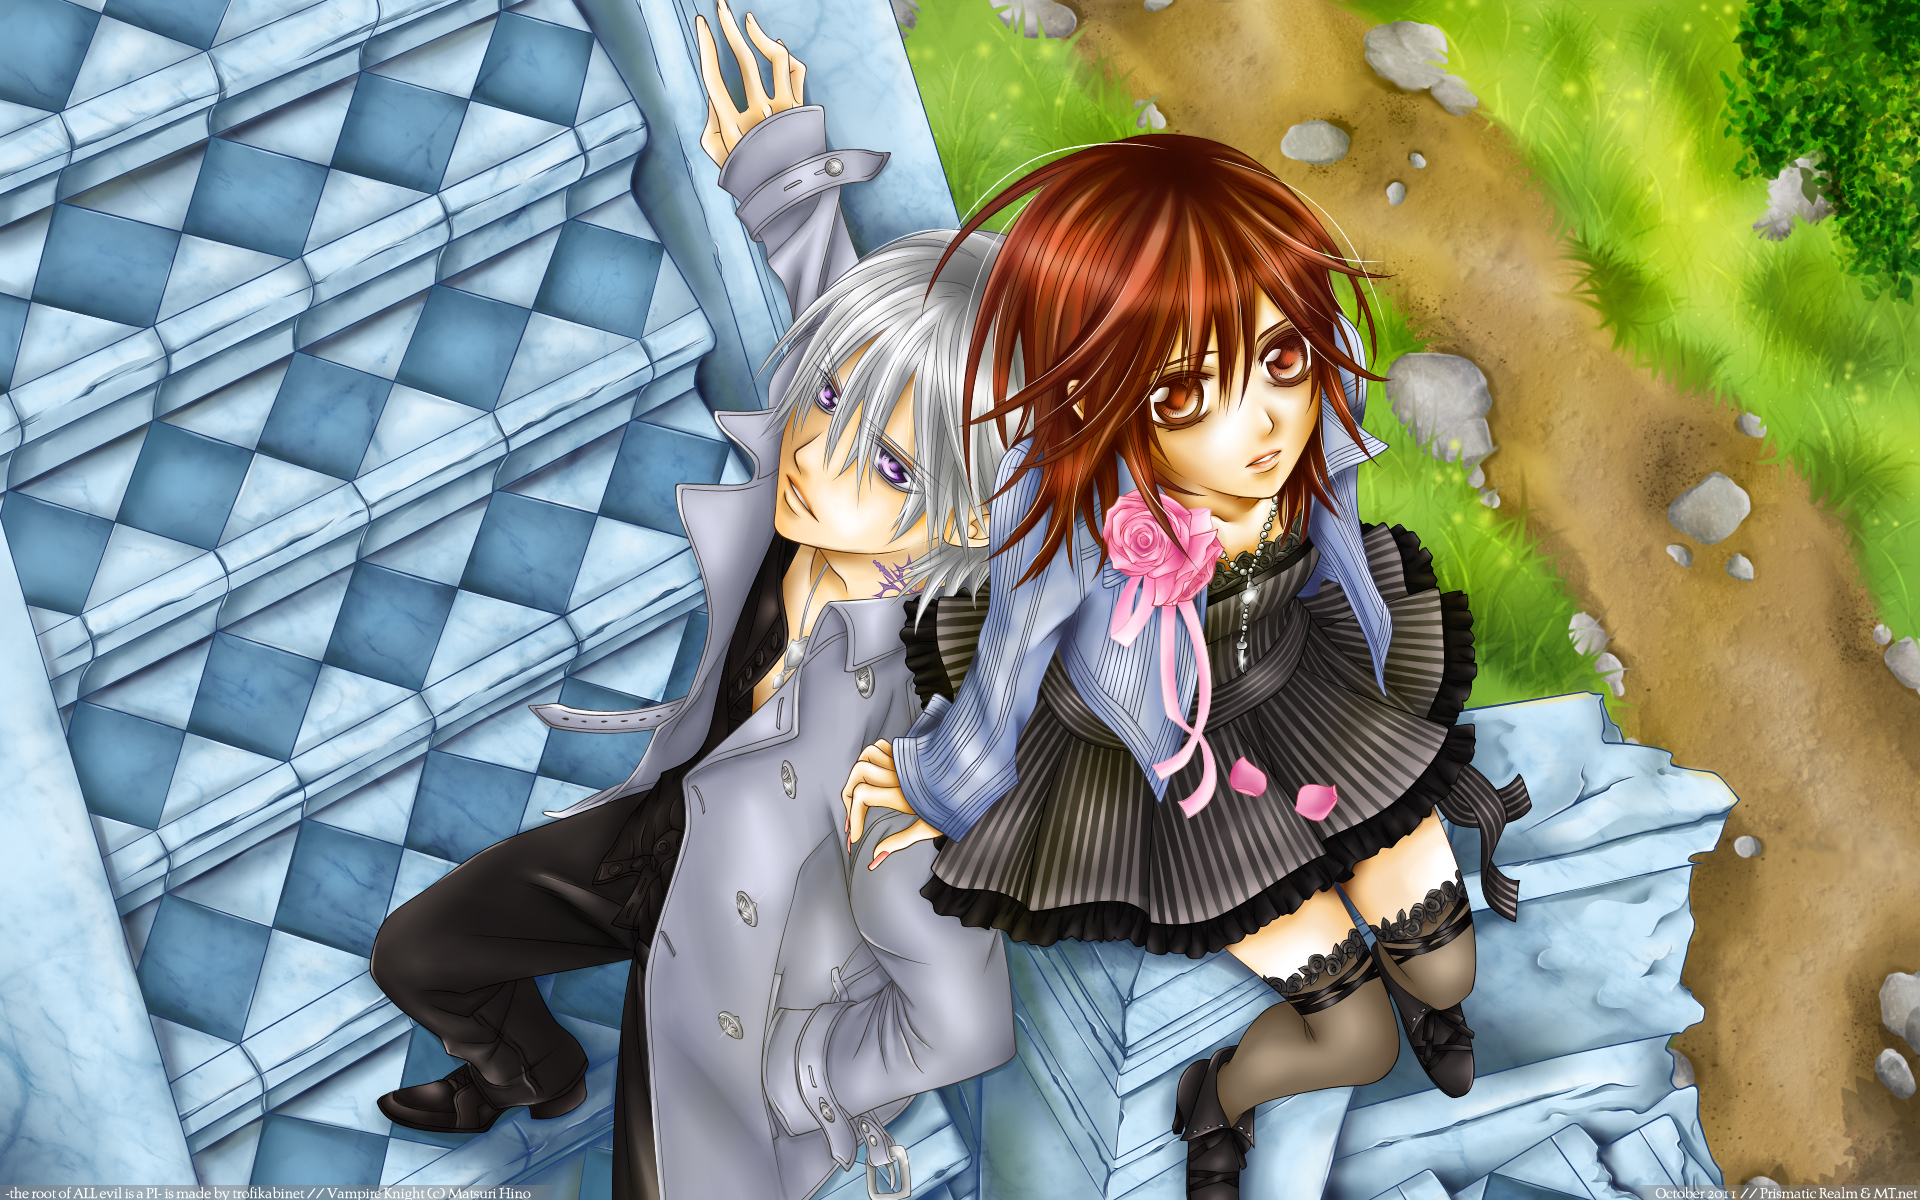 Vampire Knight Wallpaper: -the root of ALL evil is a PI ...